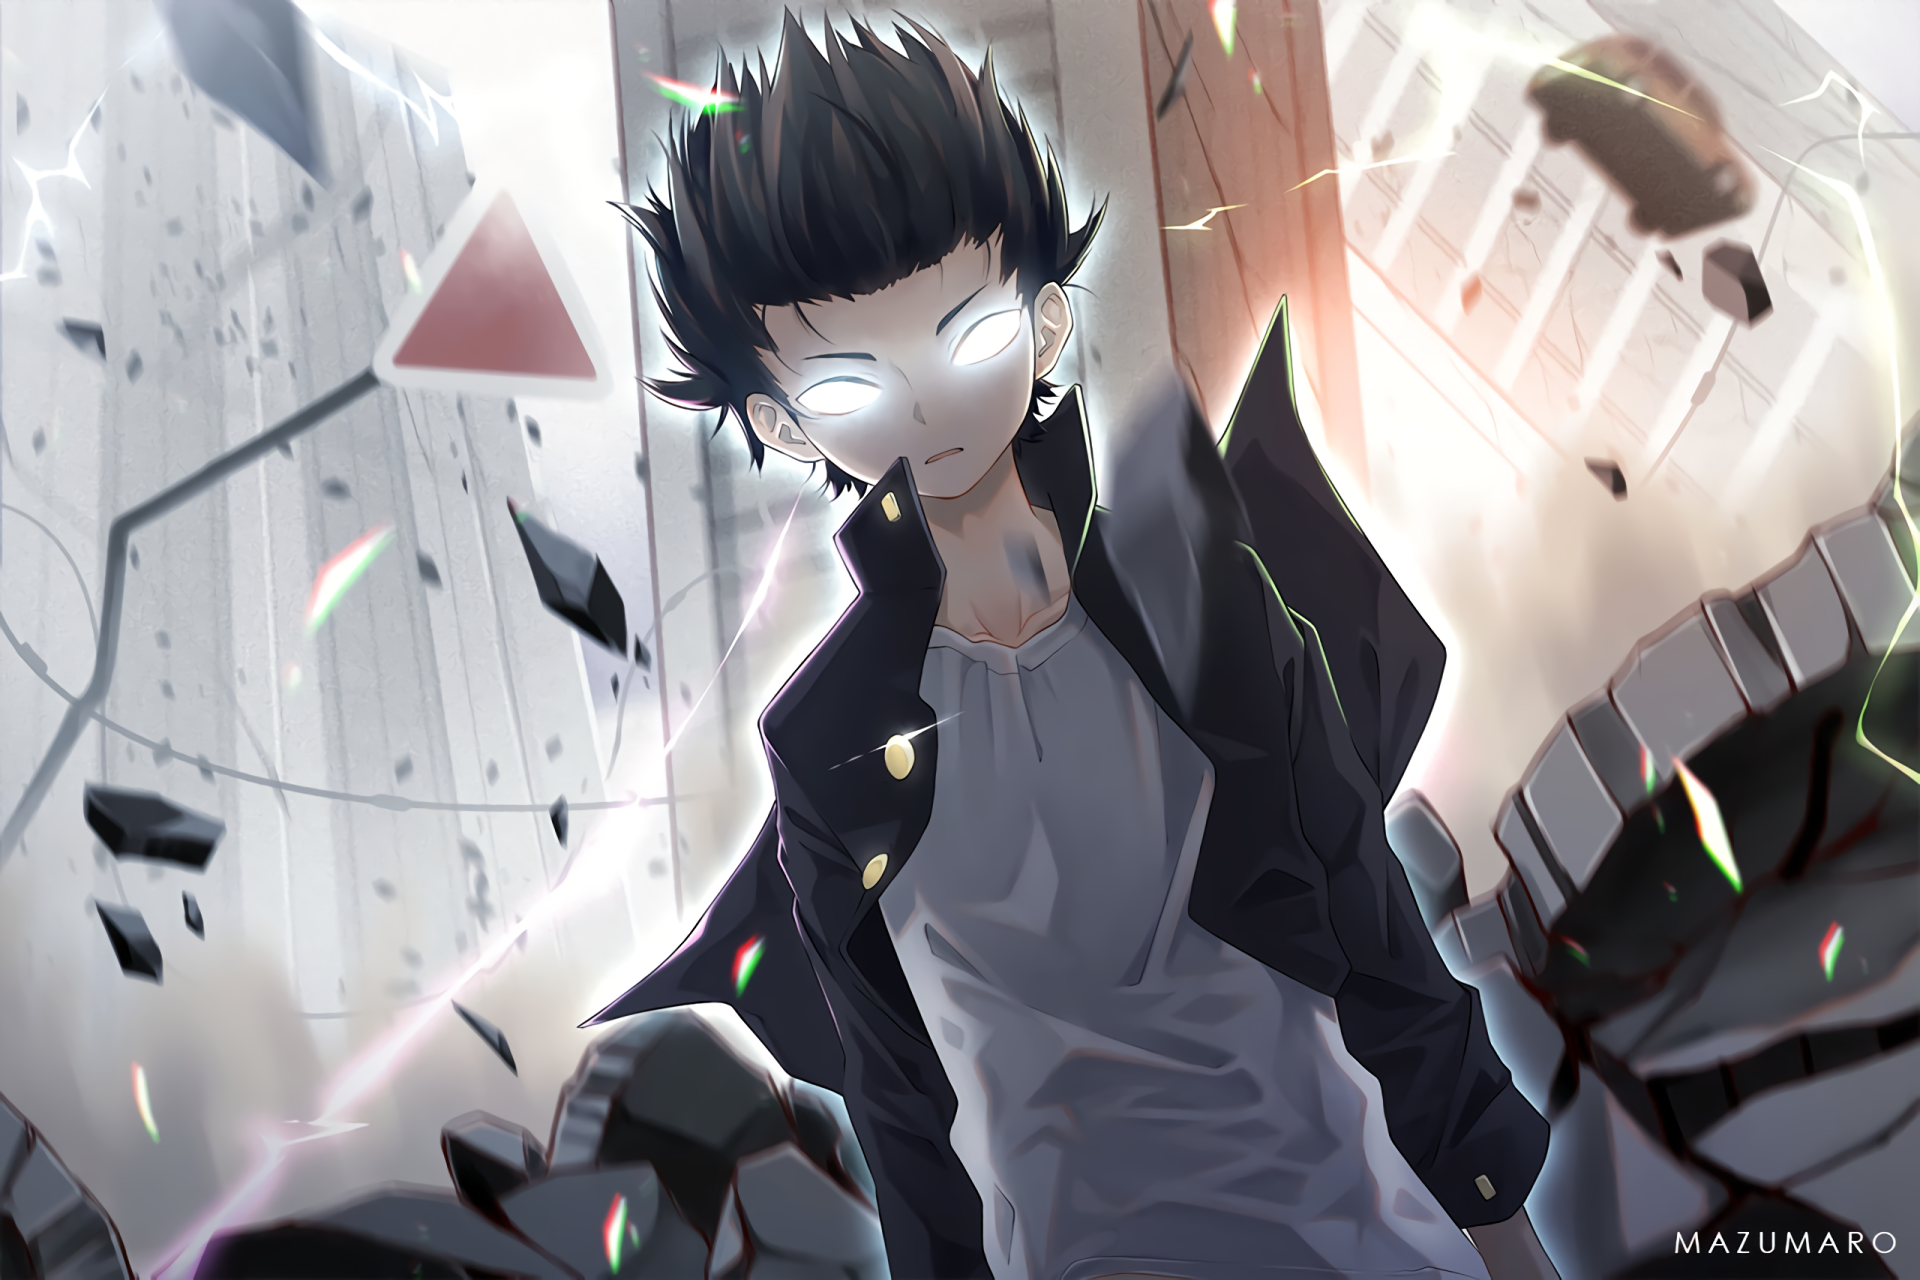 64 Mob Psycho 100 Hd Wallpapers Background Images